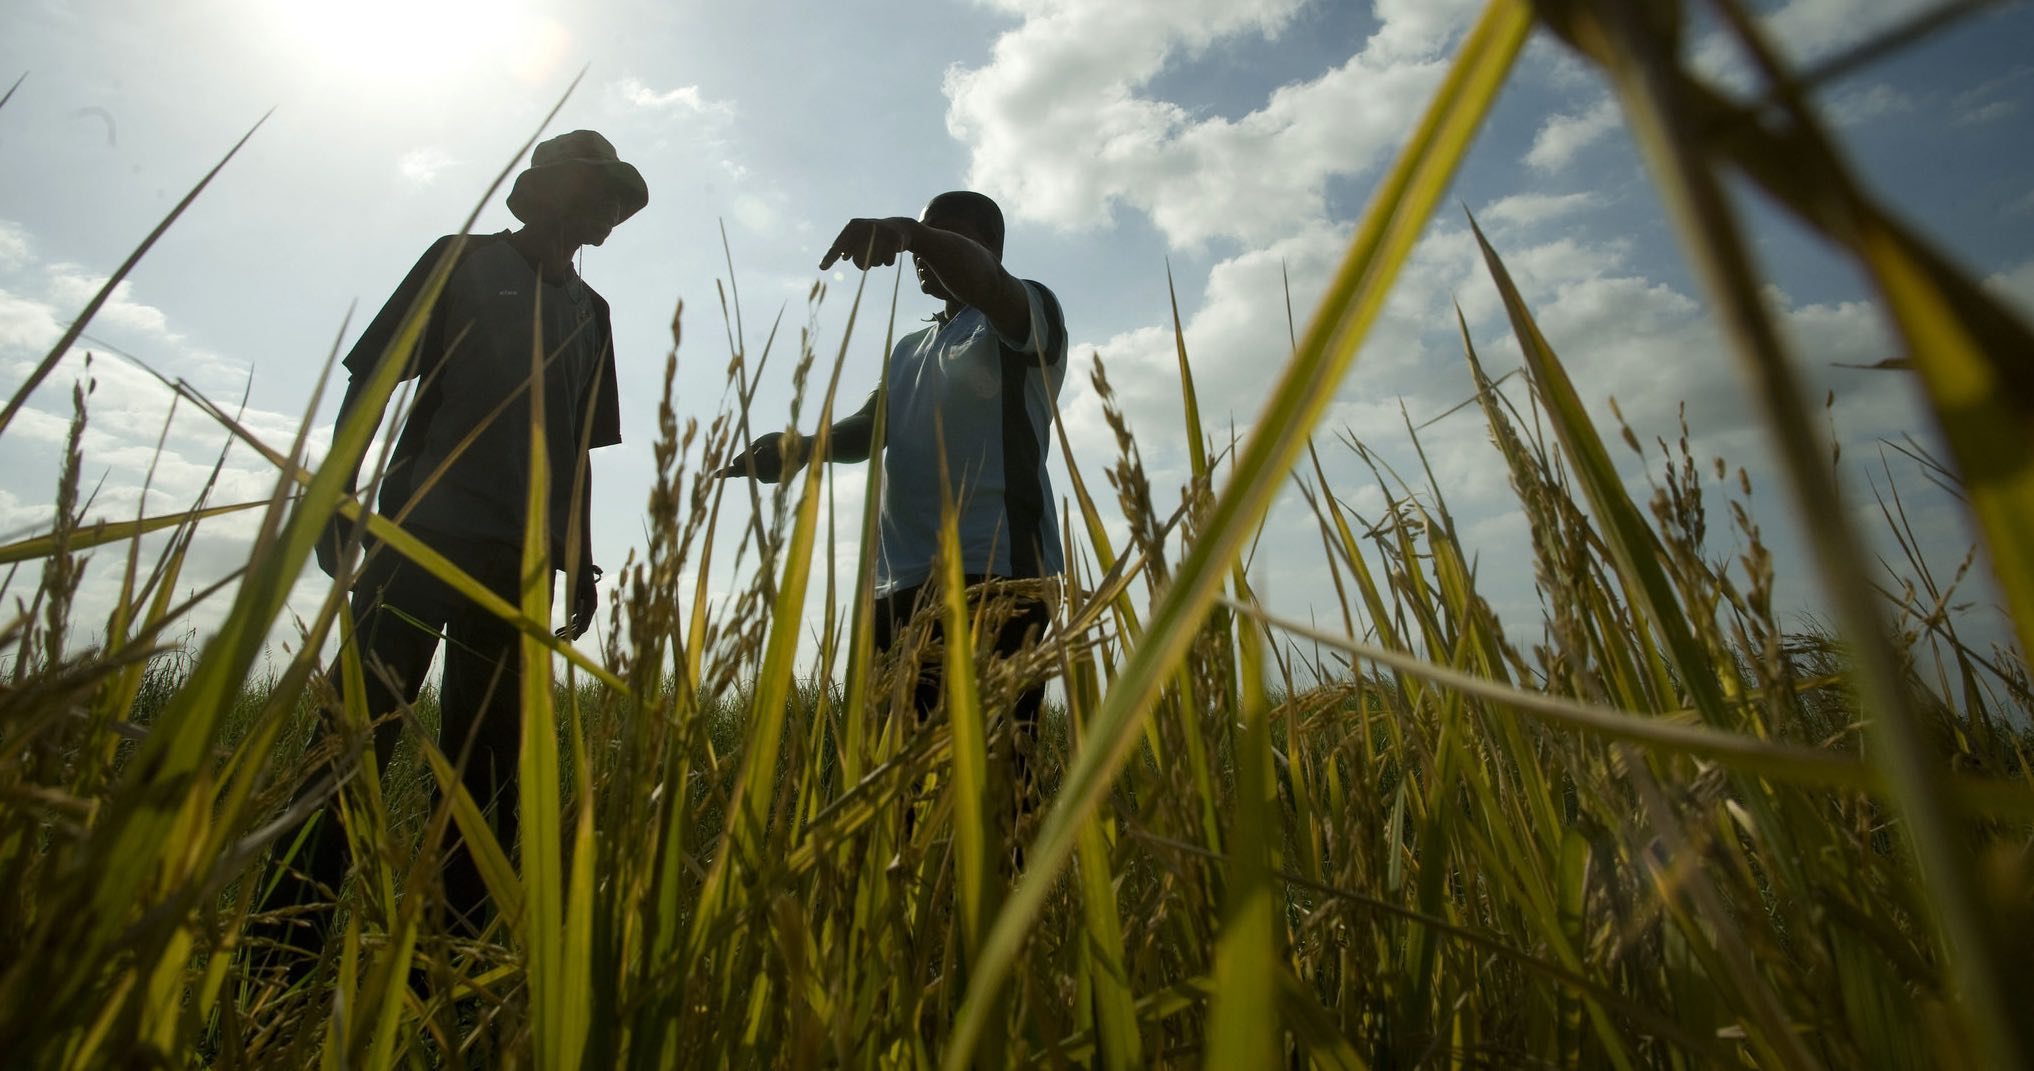 Rice plots in Mozambique (Photo: CIF Action/Flickr)